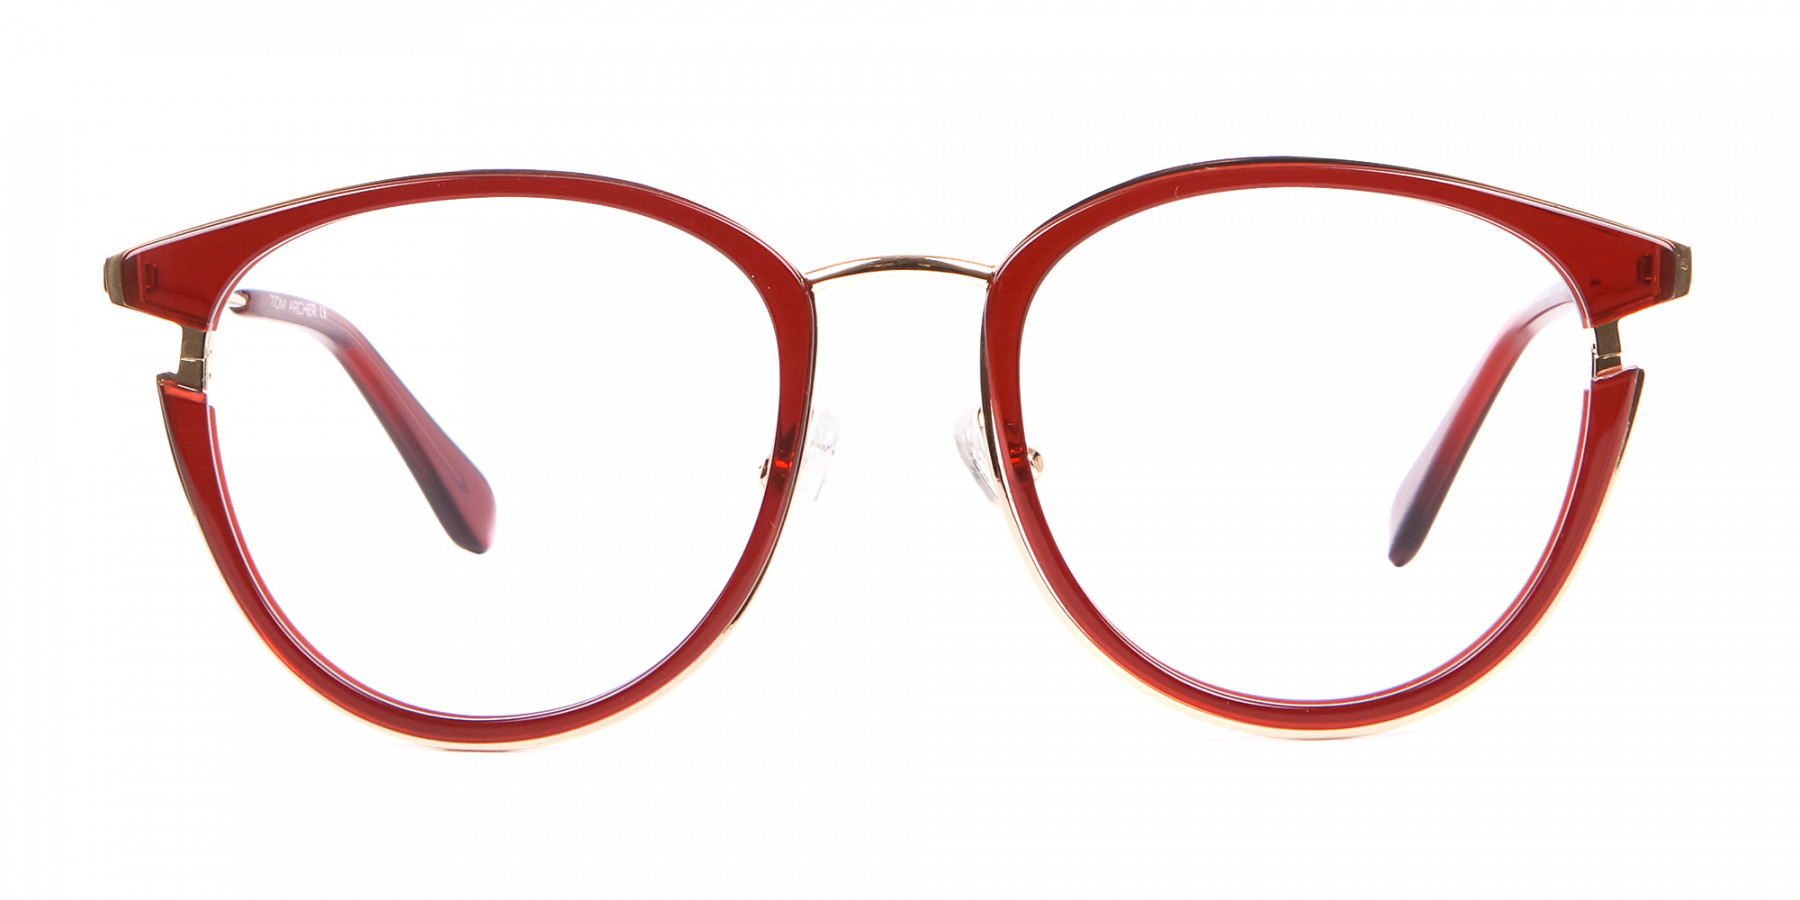 Unisex 50's Round Cat-eye Frame in Red & Gold-1